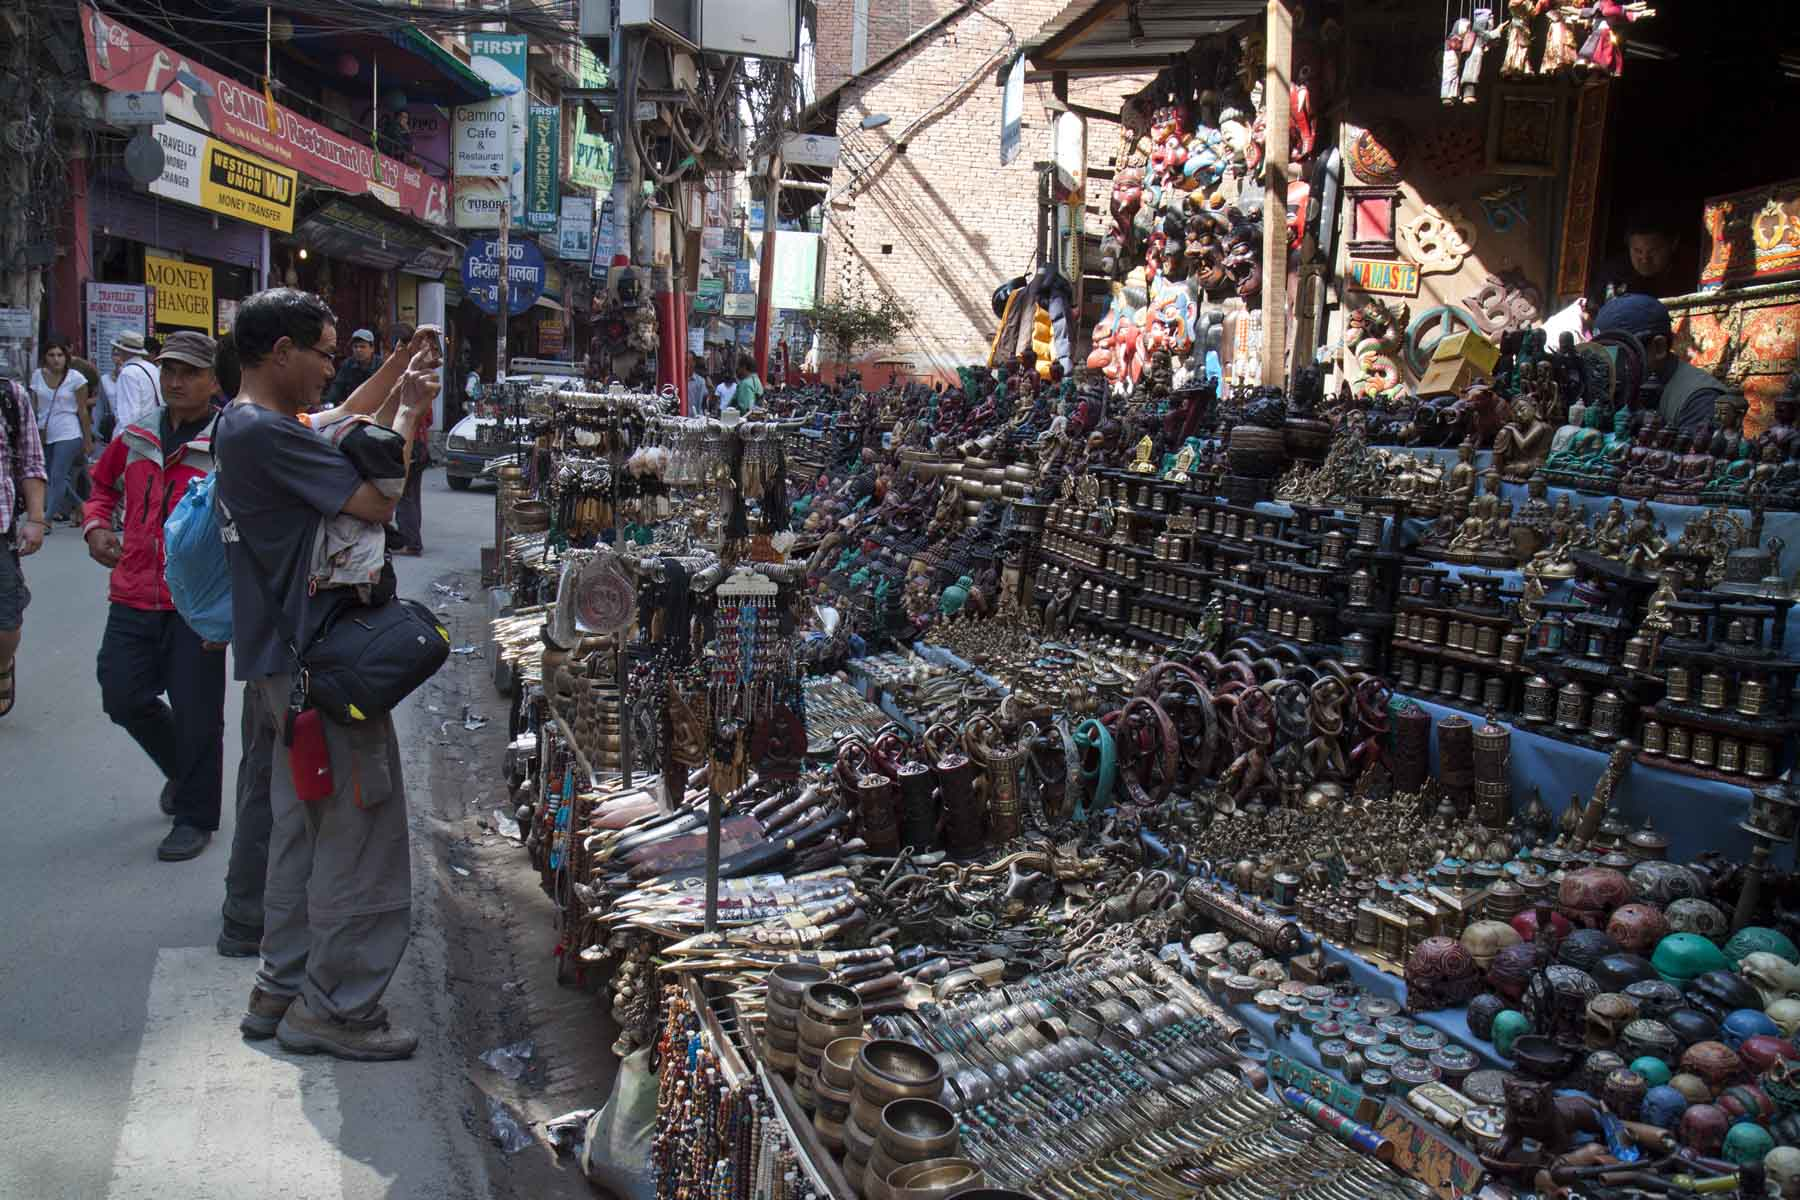 Lots of stuff, shopping in Thamel